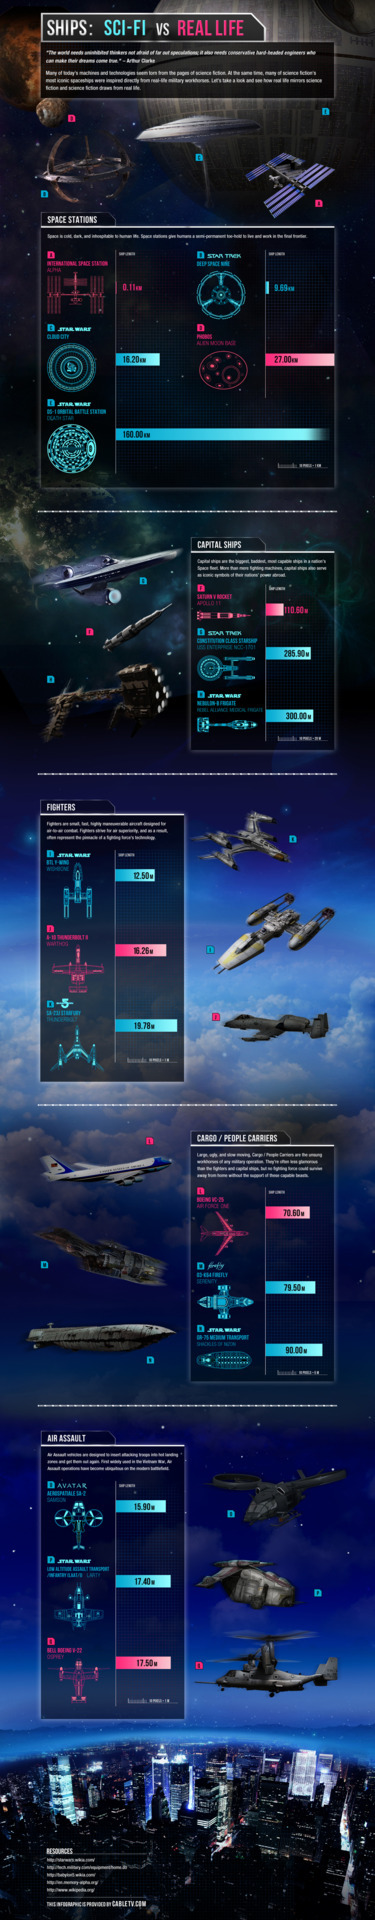 Comparison of spaceships from scifi and real life.